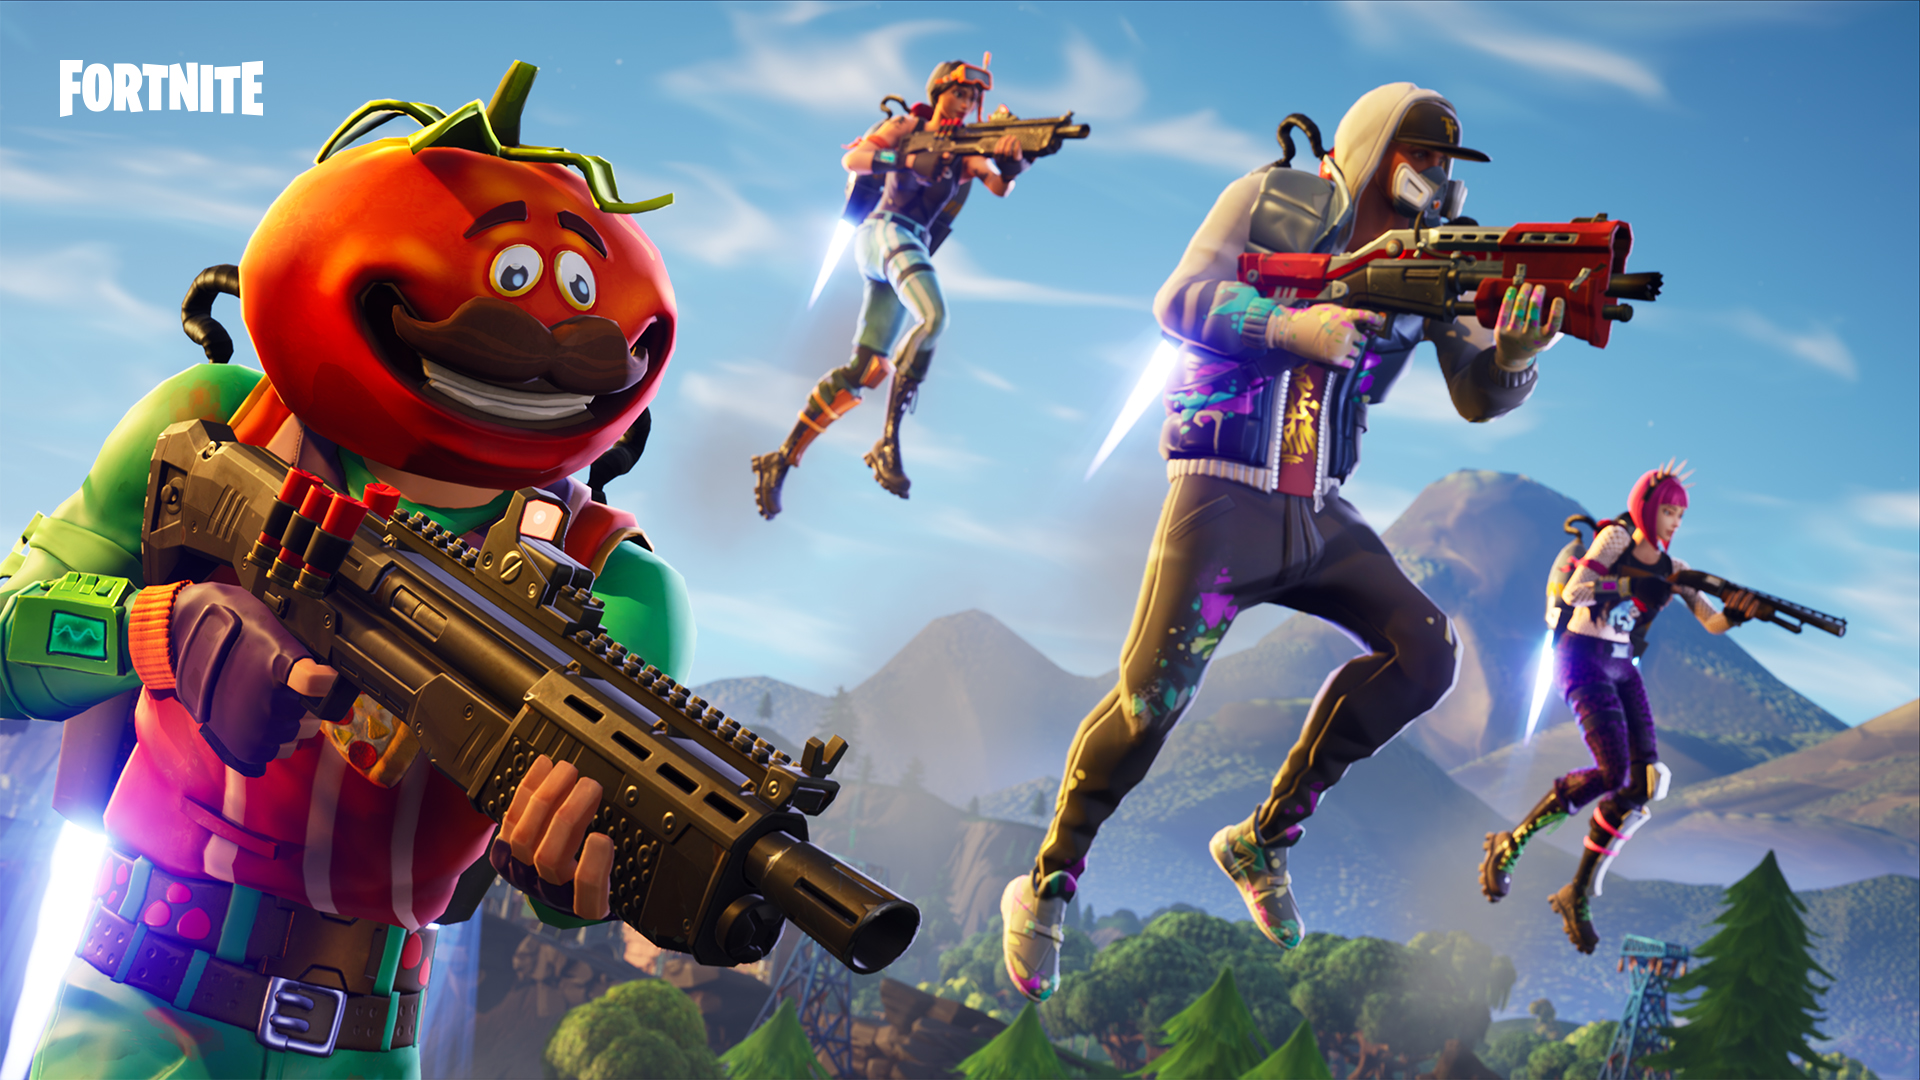 The first Fortnite Battle Royale World Cup was announced for late 2019.